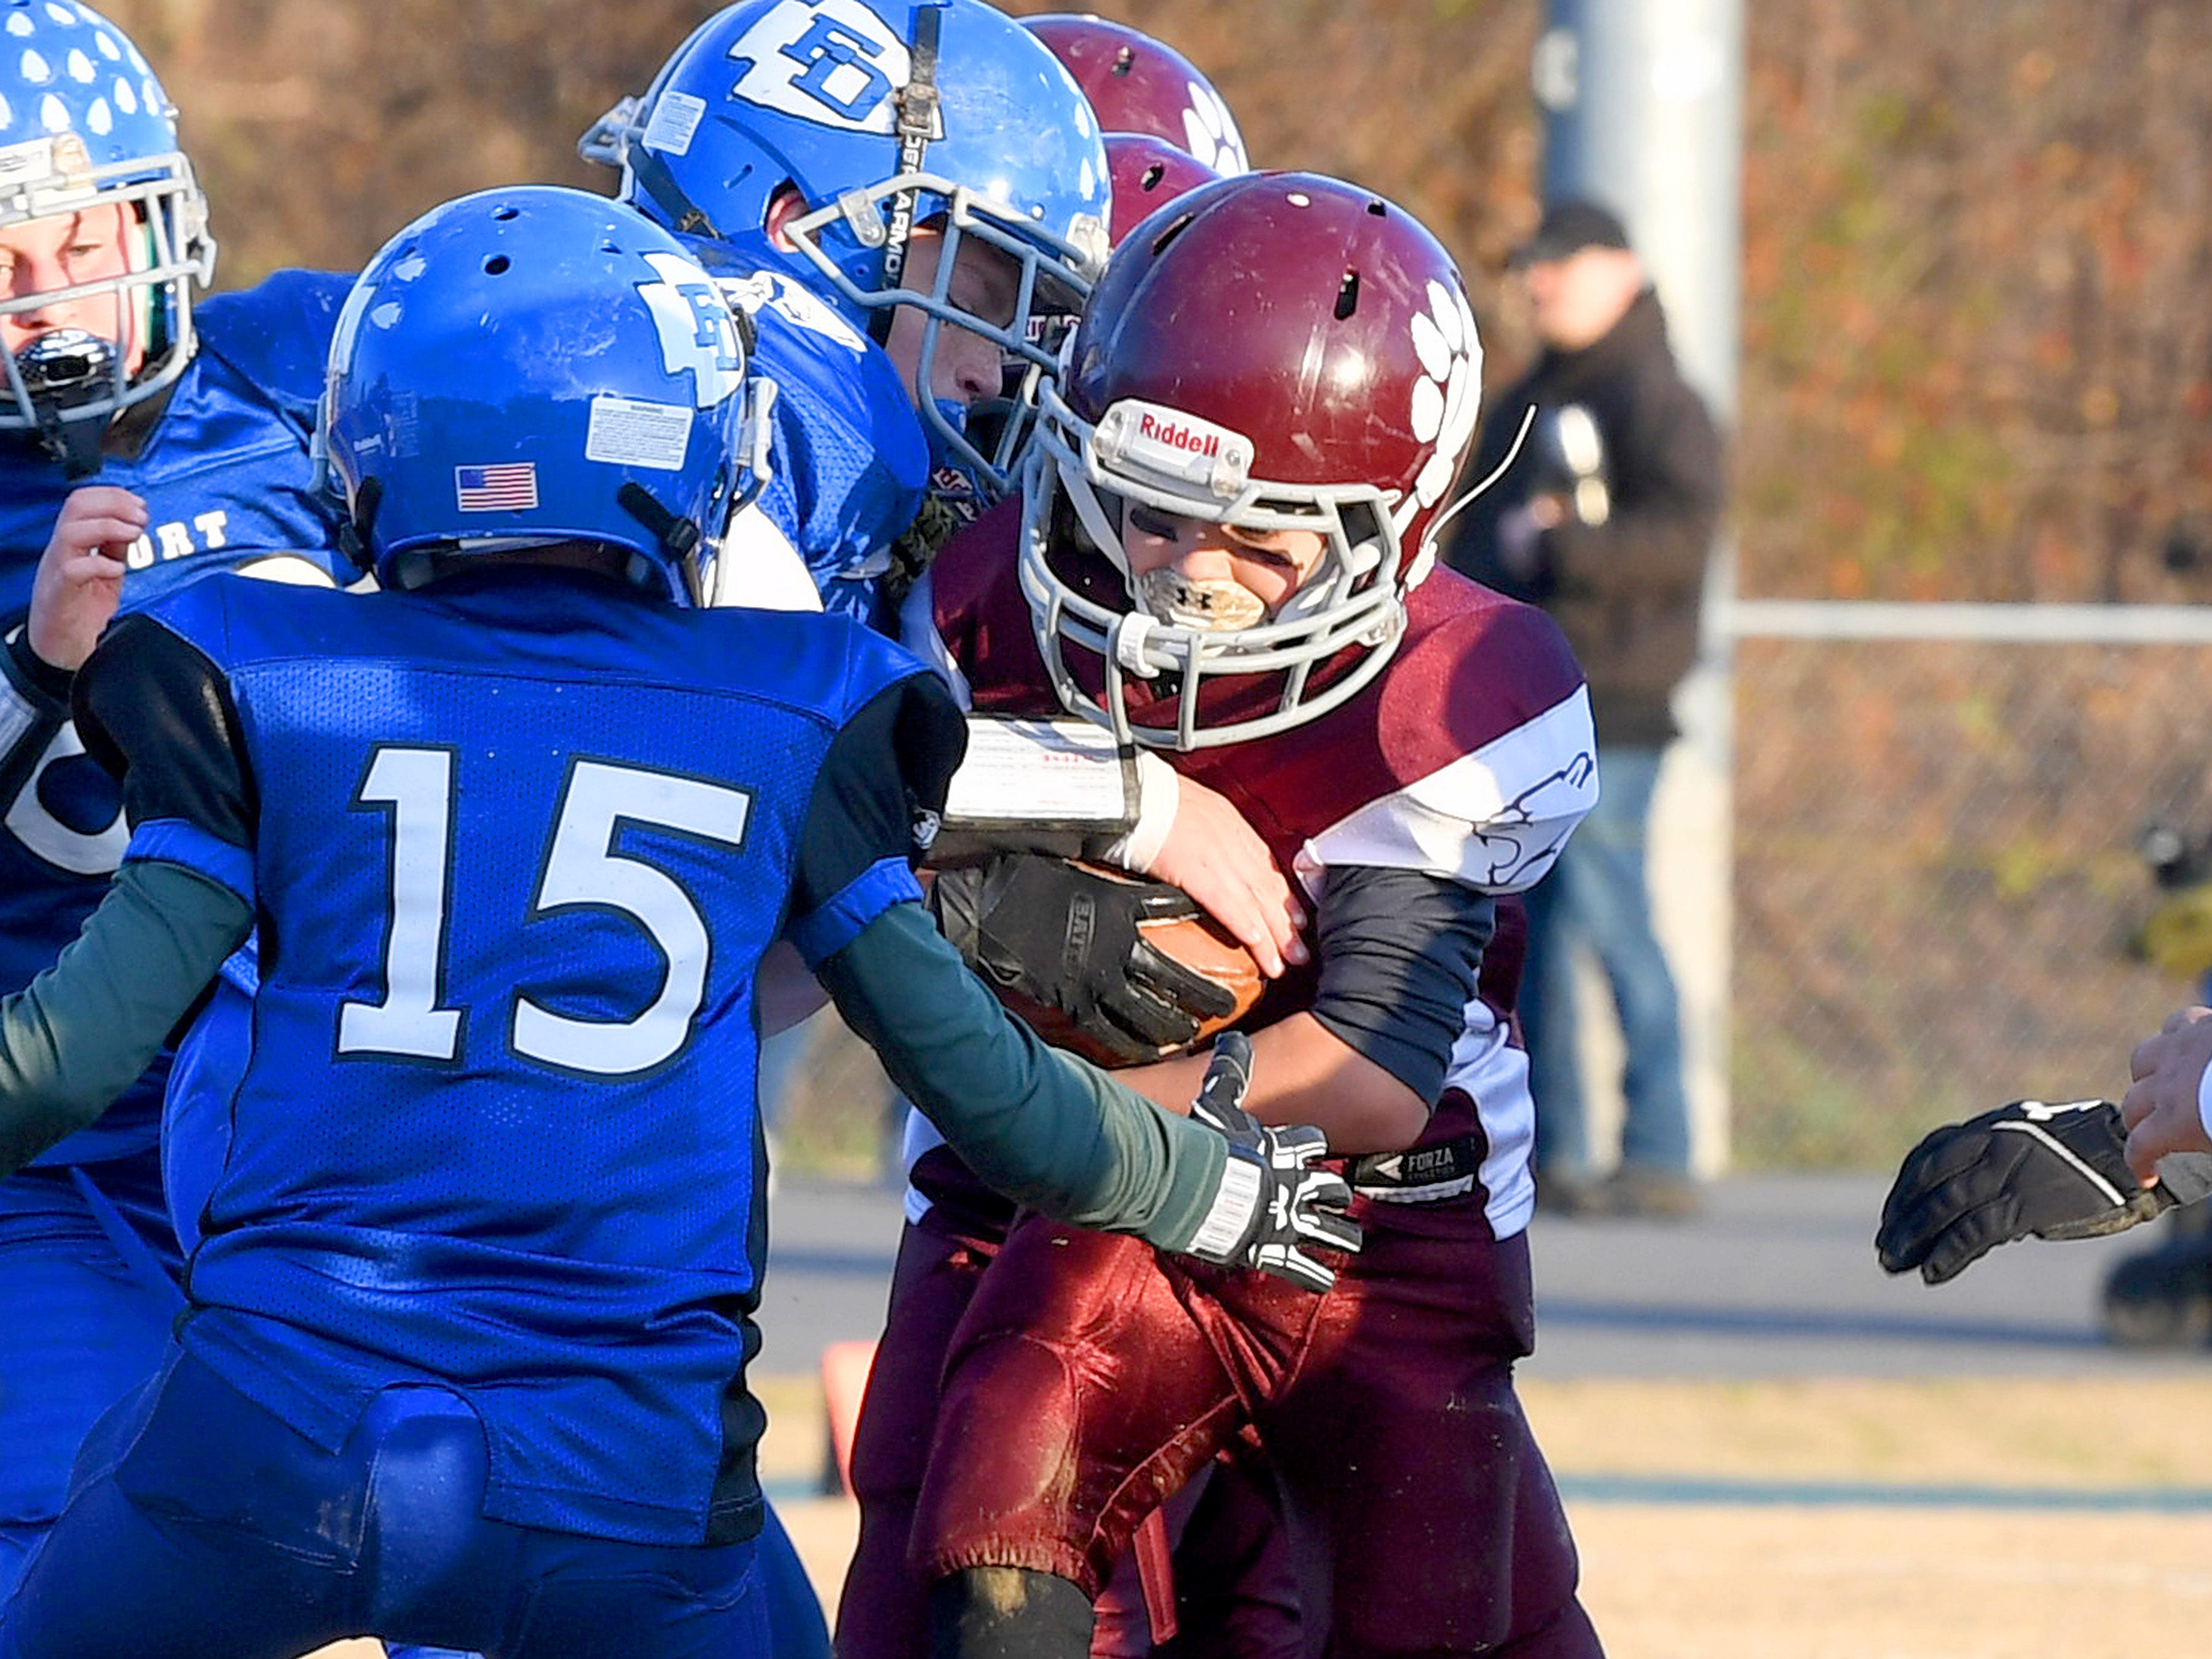 A Stuarts Draft player protects the ball as he is tackled during the Augusta County Quarterback Club Juniors Super Bowl in Fishersville on Sunday, Nov. 11, 2018.  Fort Defiance beats Stuarts Draft, 13-12.